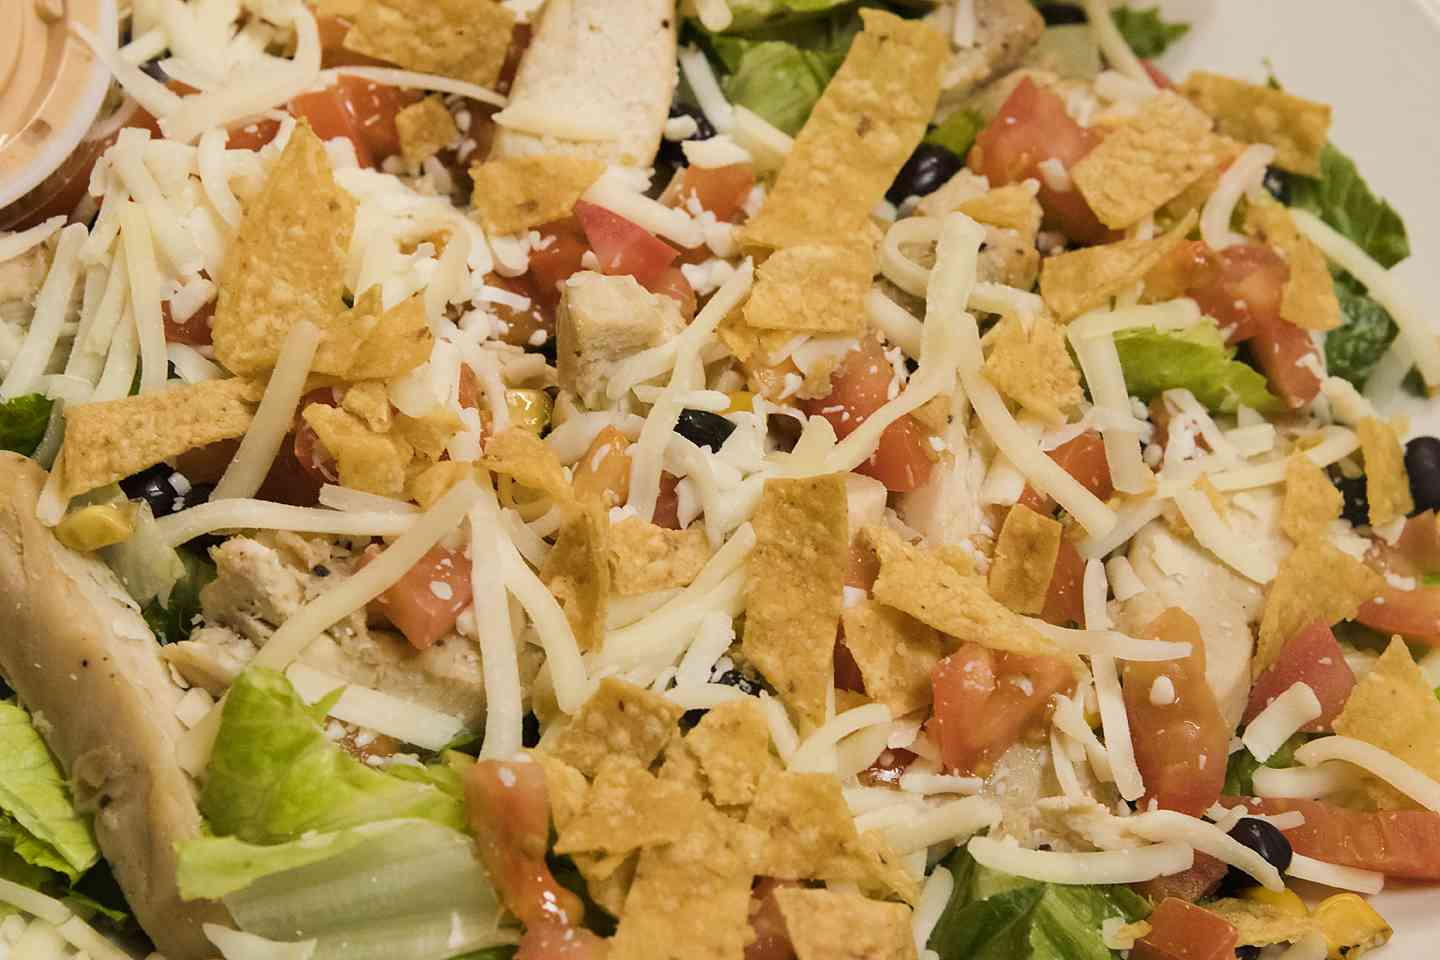 Southwest Chicken Taco Salad